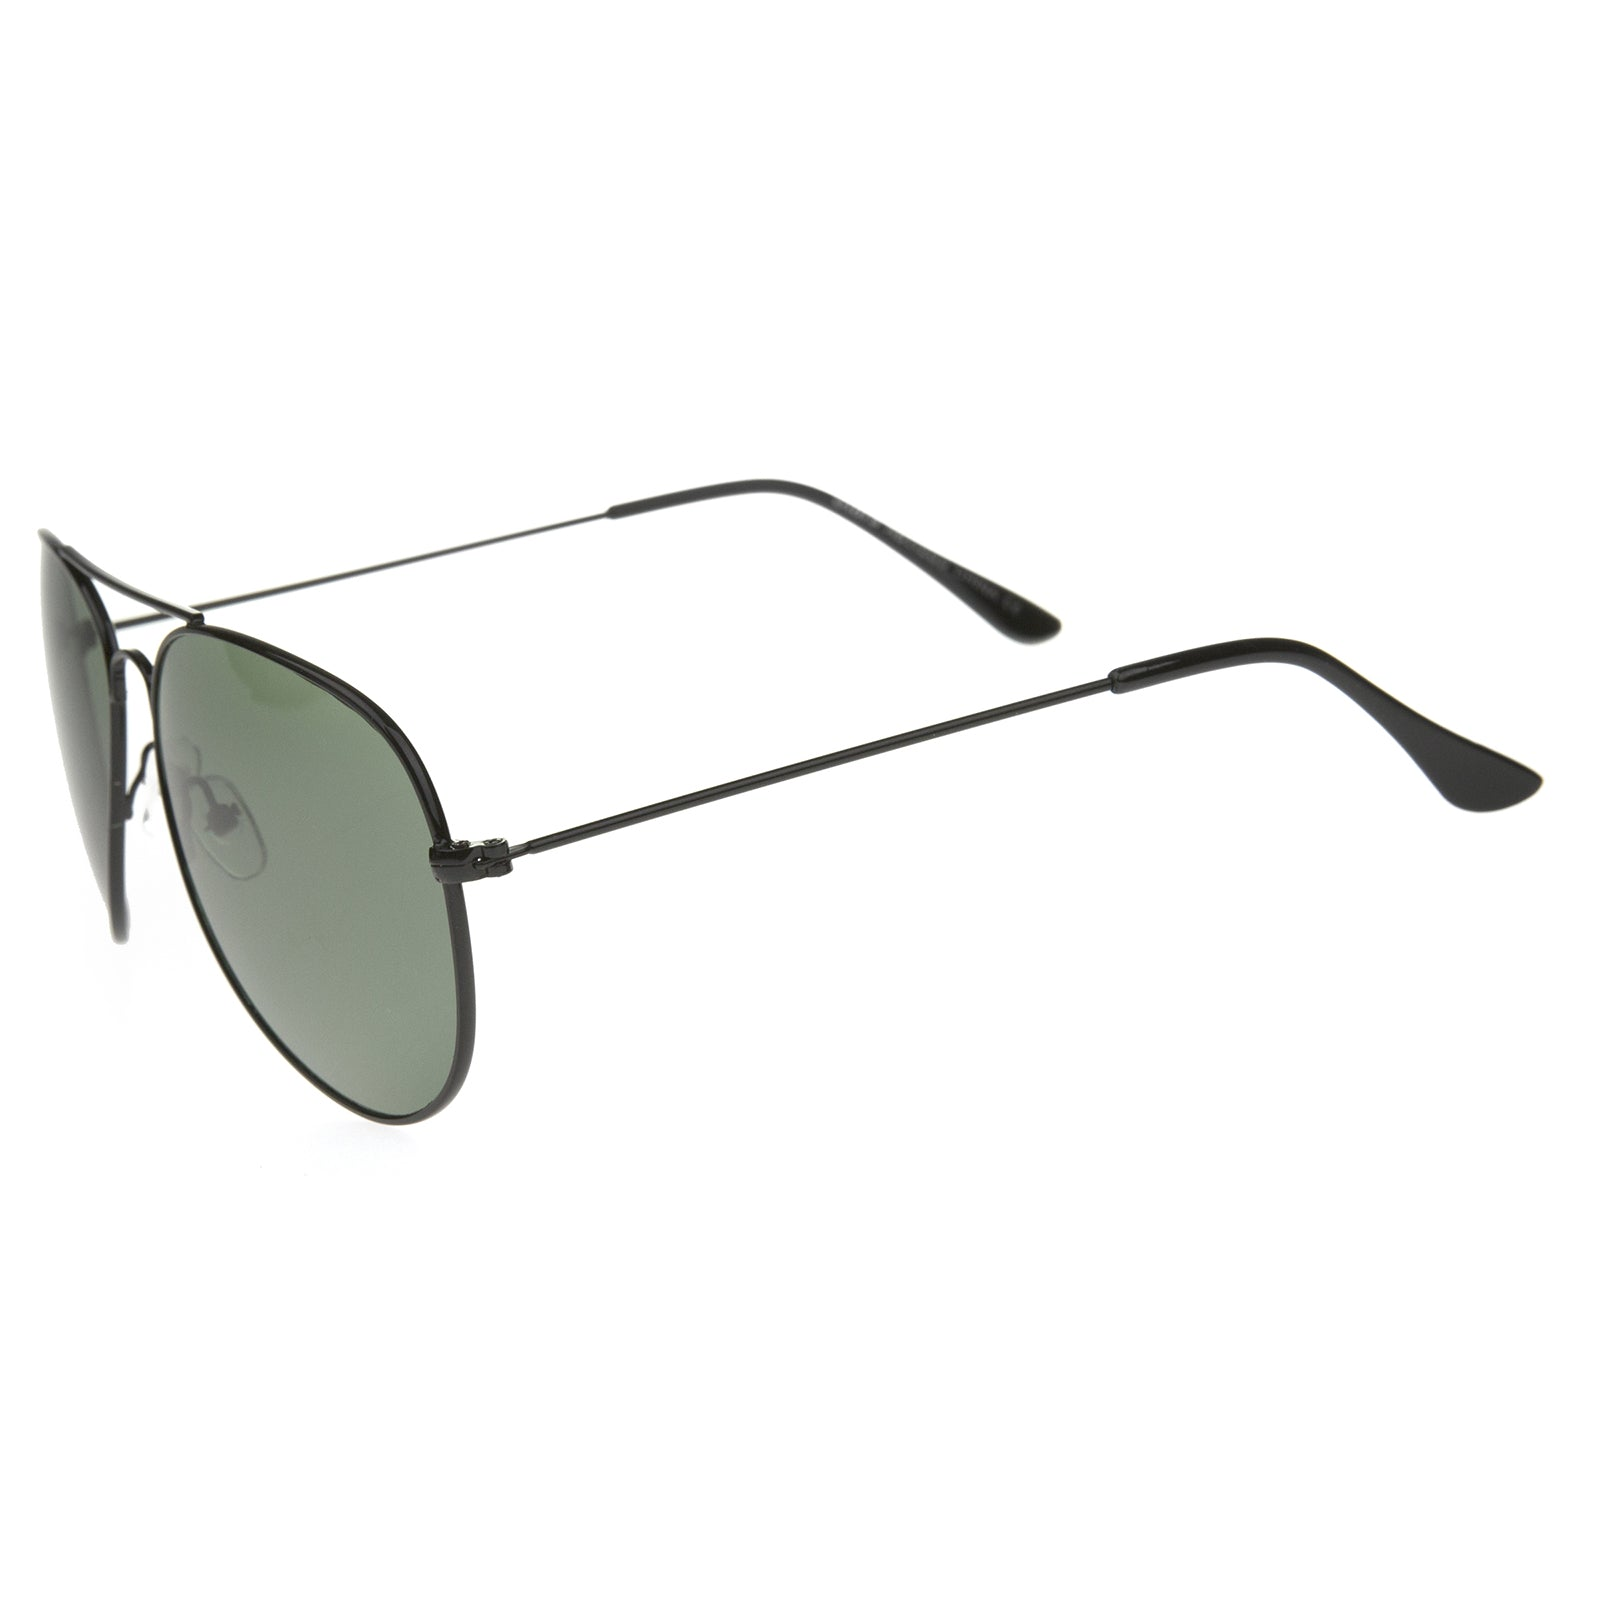 Classic Brow Bar Full Metal Frame Green Lens Aviator Sunglasses 60mm - sunglass.la